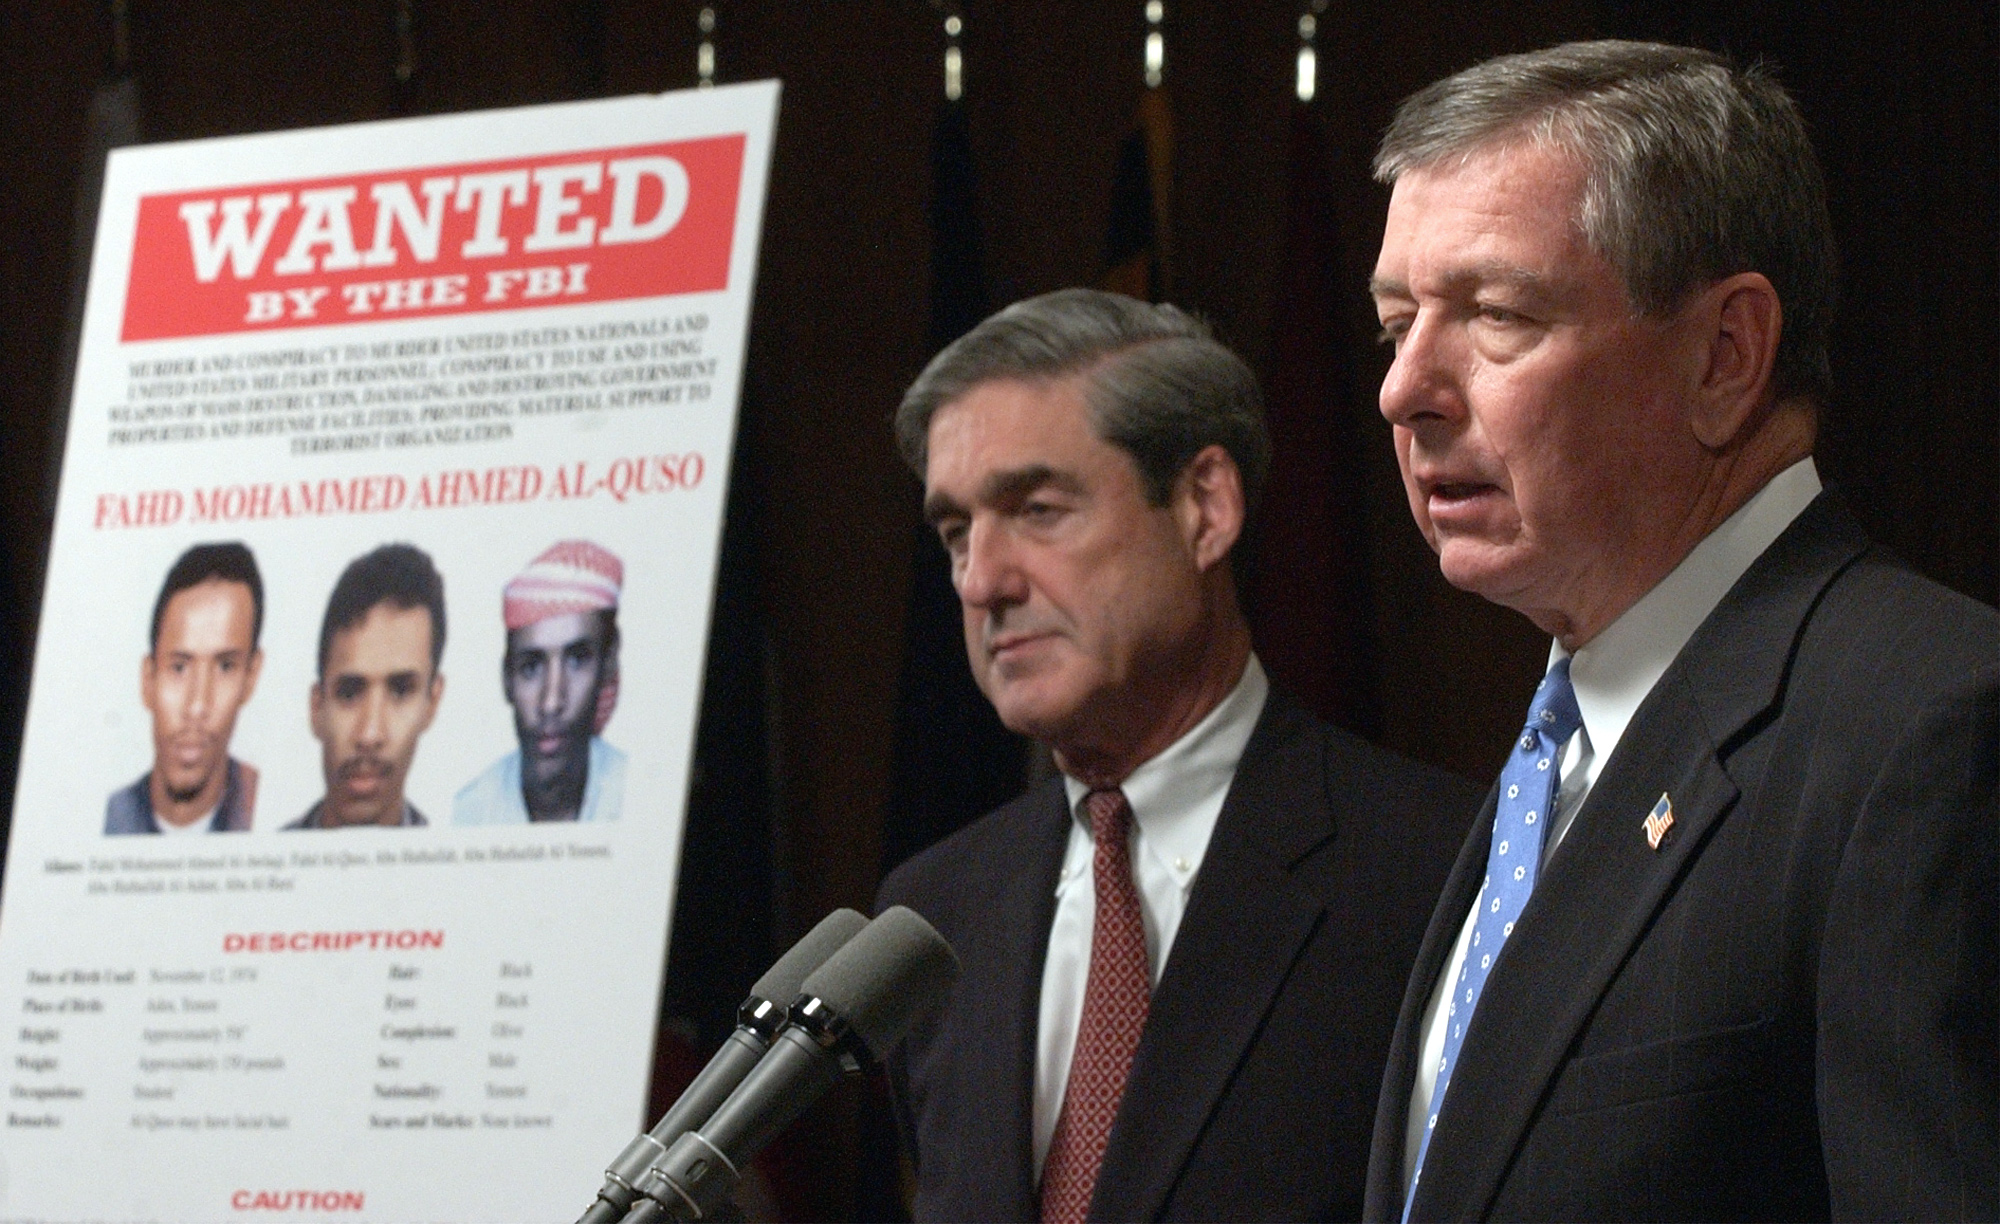 Attorney General John Ashcroft, right, accompanied by FBI Director Robert Mueller, announces at FBI headquarters in Washington Thursday, May 15, 2003 that Fahd Al-Quso, shown in wanted poster at left, and Jamal Ahmed Mohammed al-Badawi were charged Thursday as al-Qaida members who helped plan the attack on the USS Cole that killed 17 American sailors in 2000. Both Al-Quso and al-Badawi were charged with 50 counts of various terrorism offenses, including the murders of U.S. nationals and U.S. military personnel. If convicted, they could face the death penalty. (AP Photo/Susan Walsh)